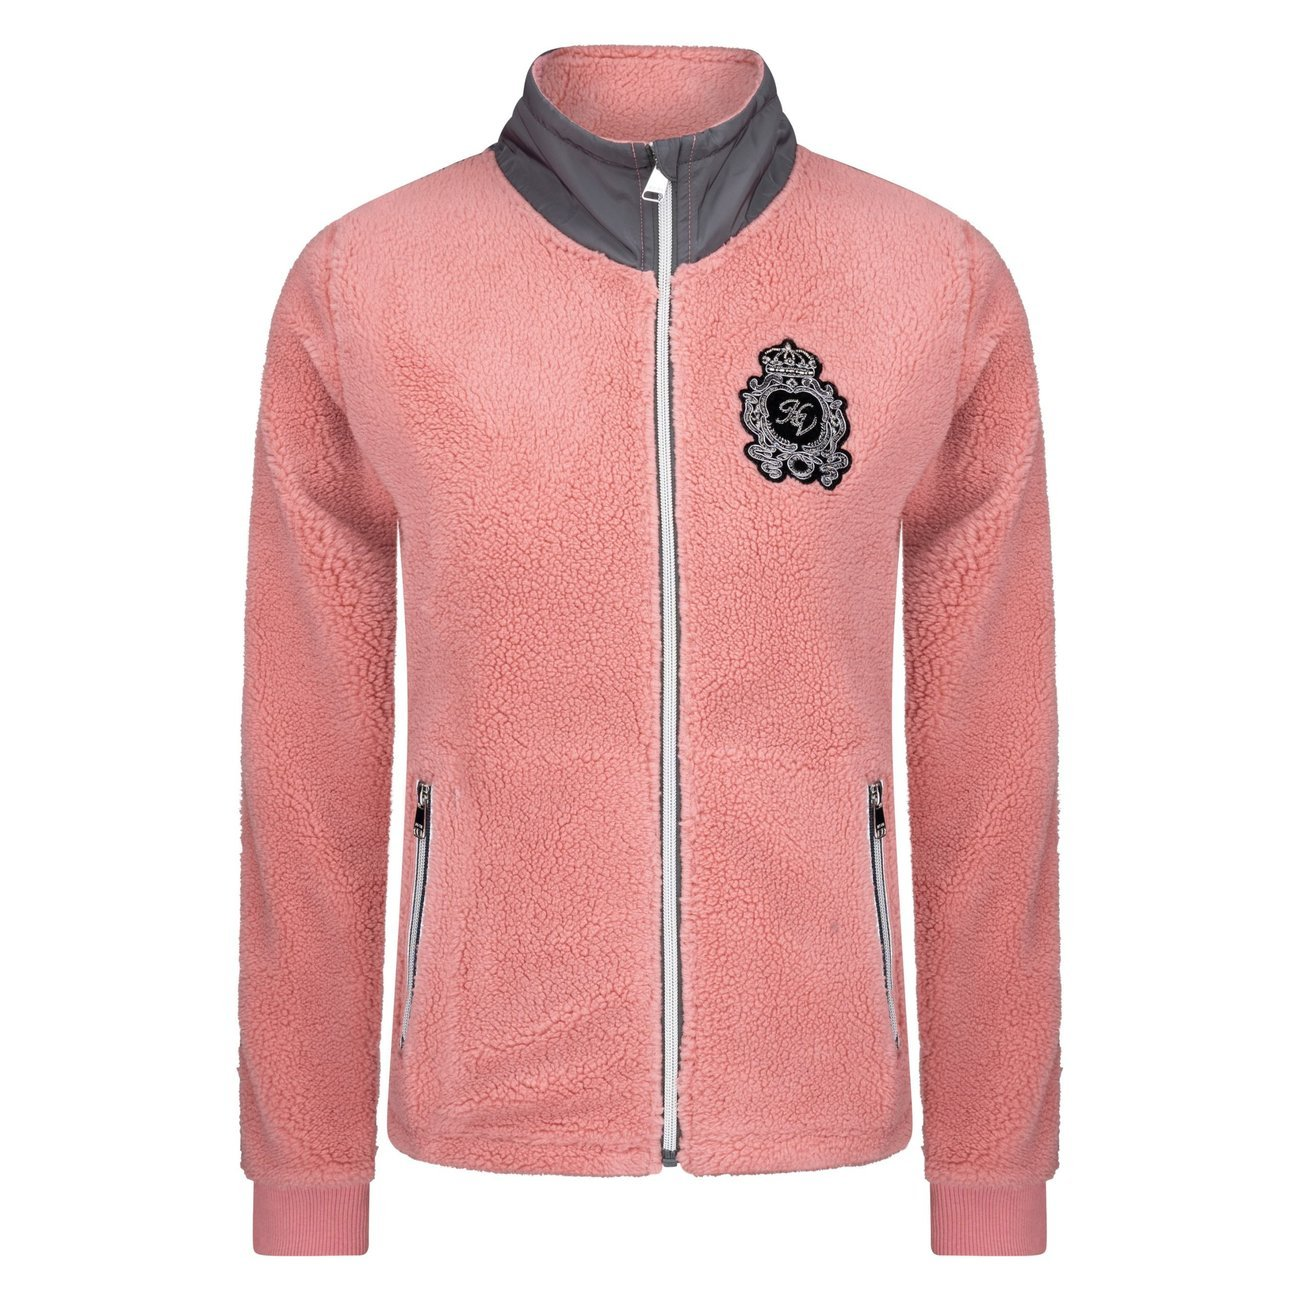 HV Polo Sweater Bianca, Gr. S - dusty rose